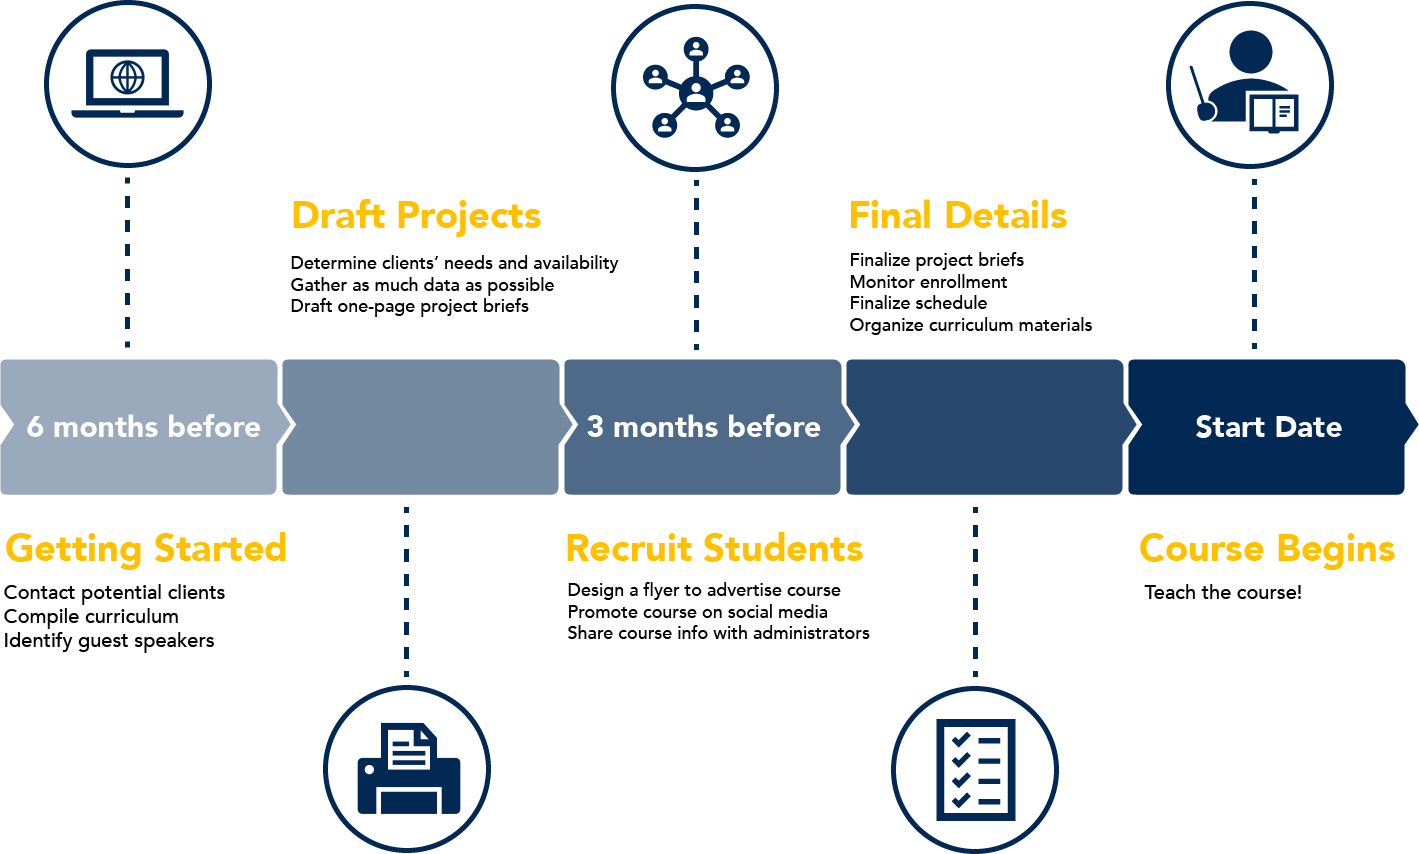 Timeline graphic illustrating the different phases of setting up the course, including identifying clients, drafting projects, and recruiting students